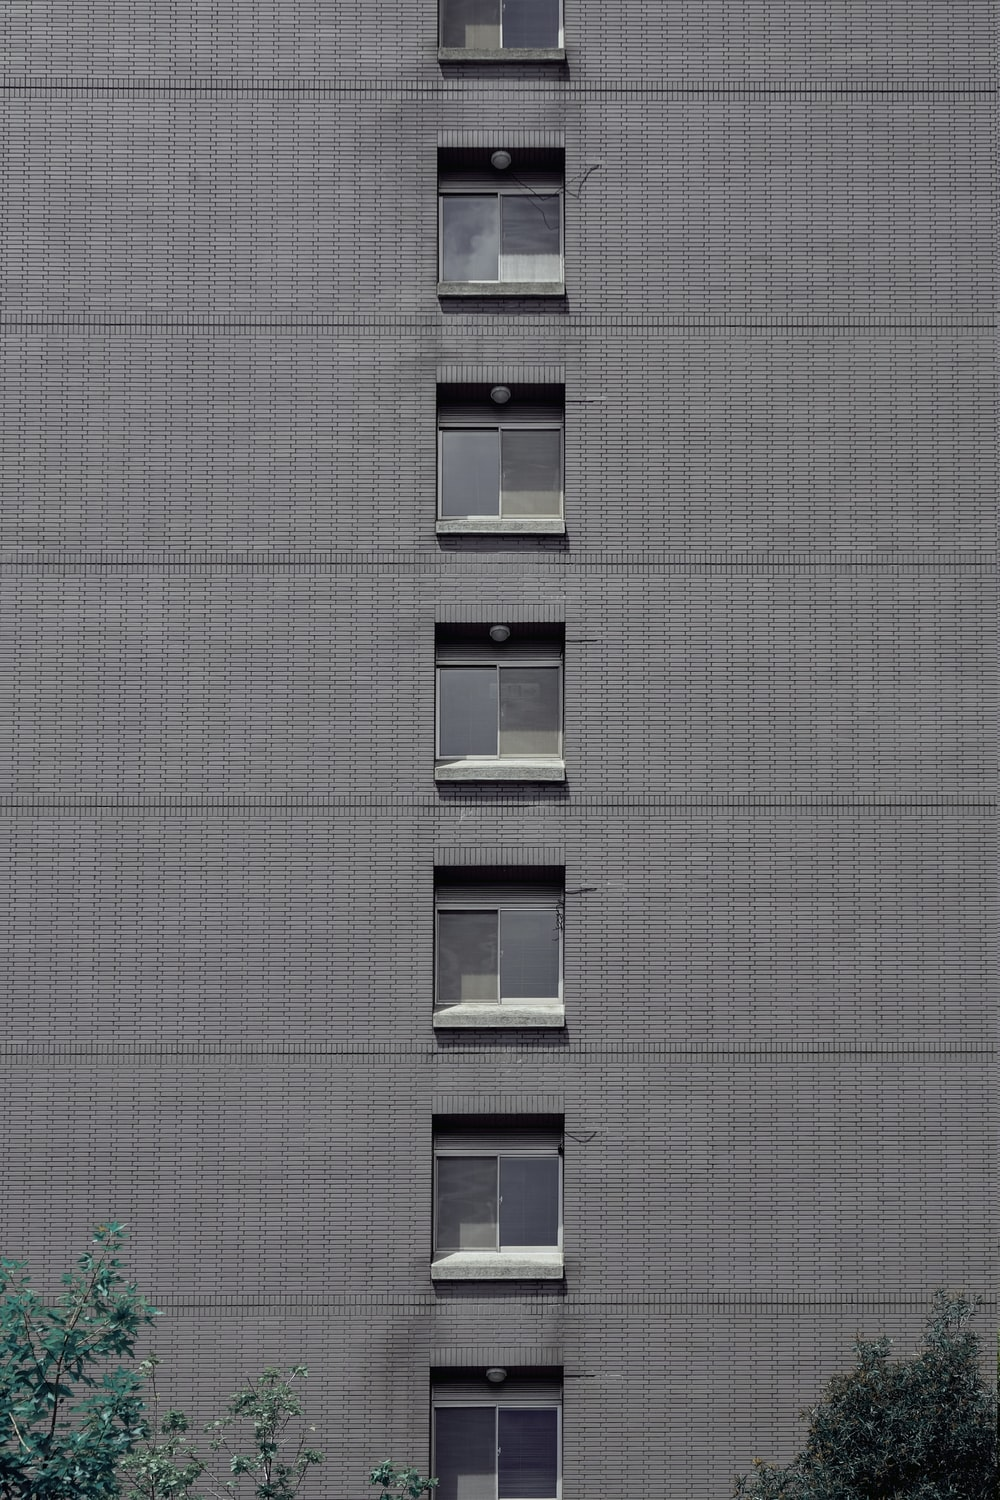 white wooden window frame on gray concrete building